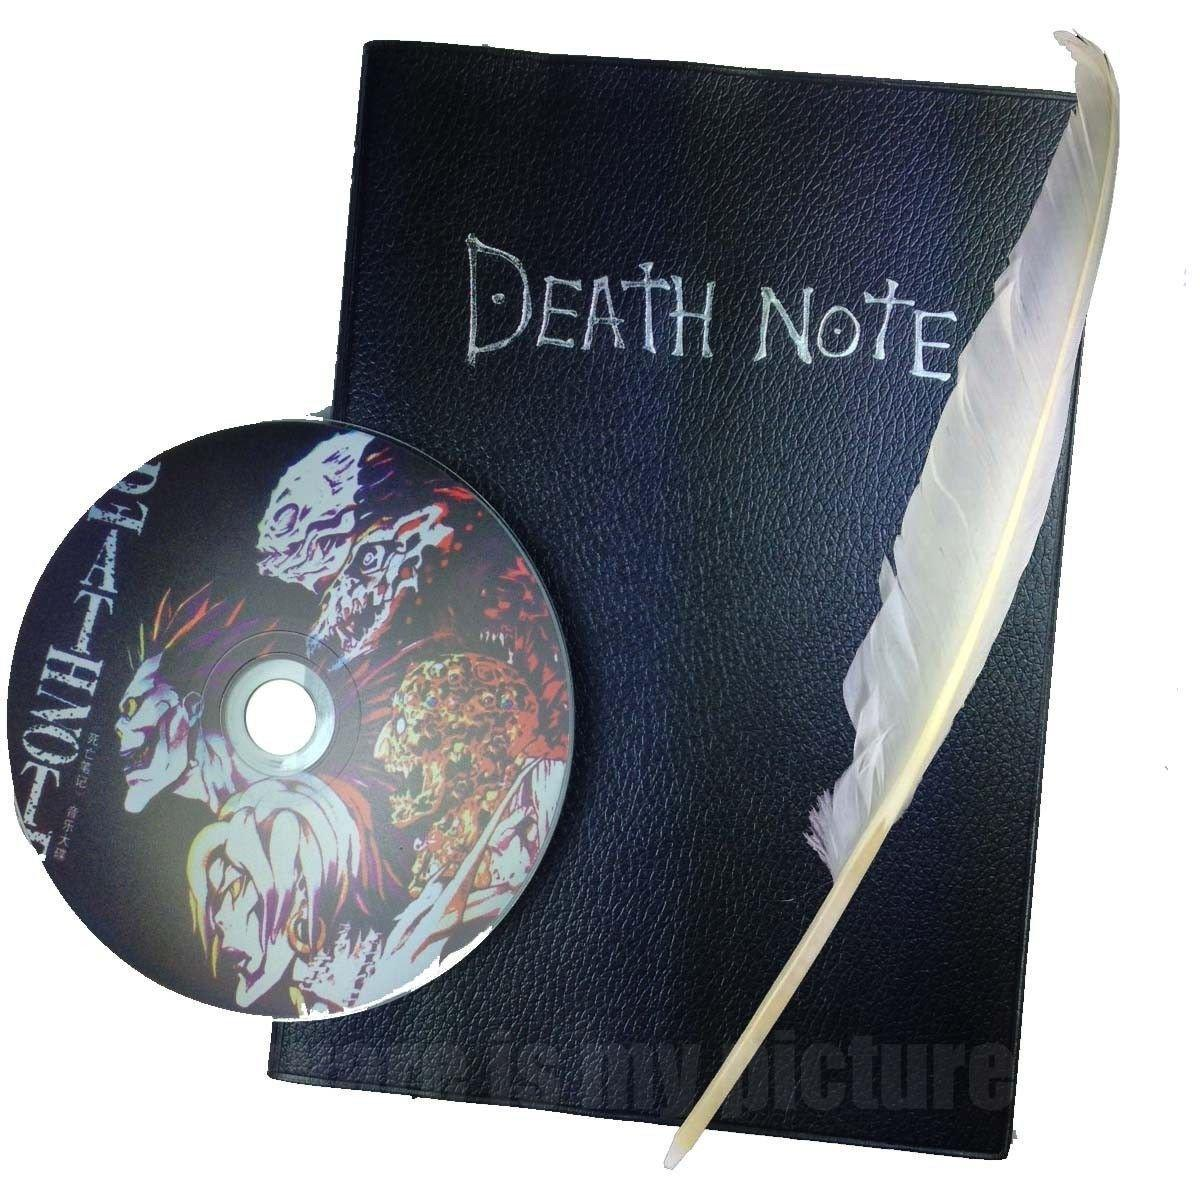 Death Note - Death Note - Notebook + CD + Feather Pen